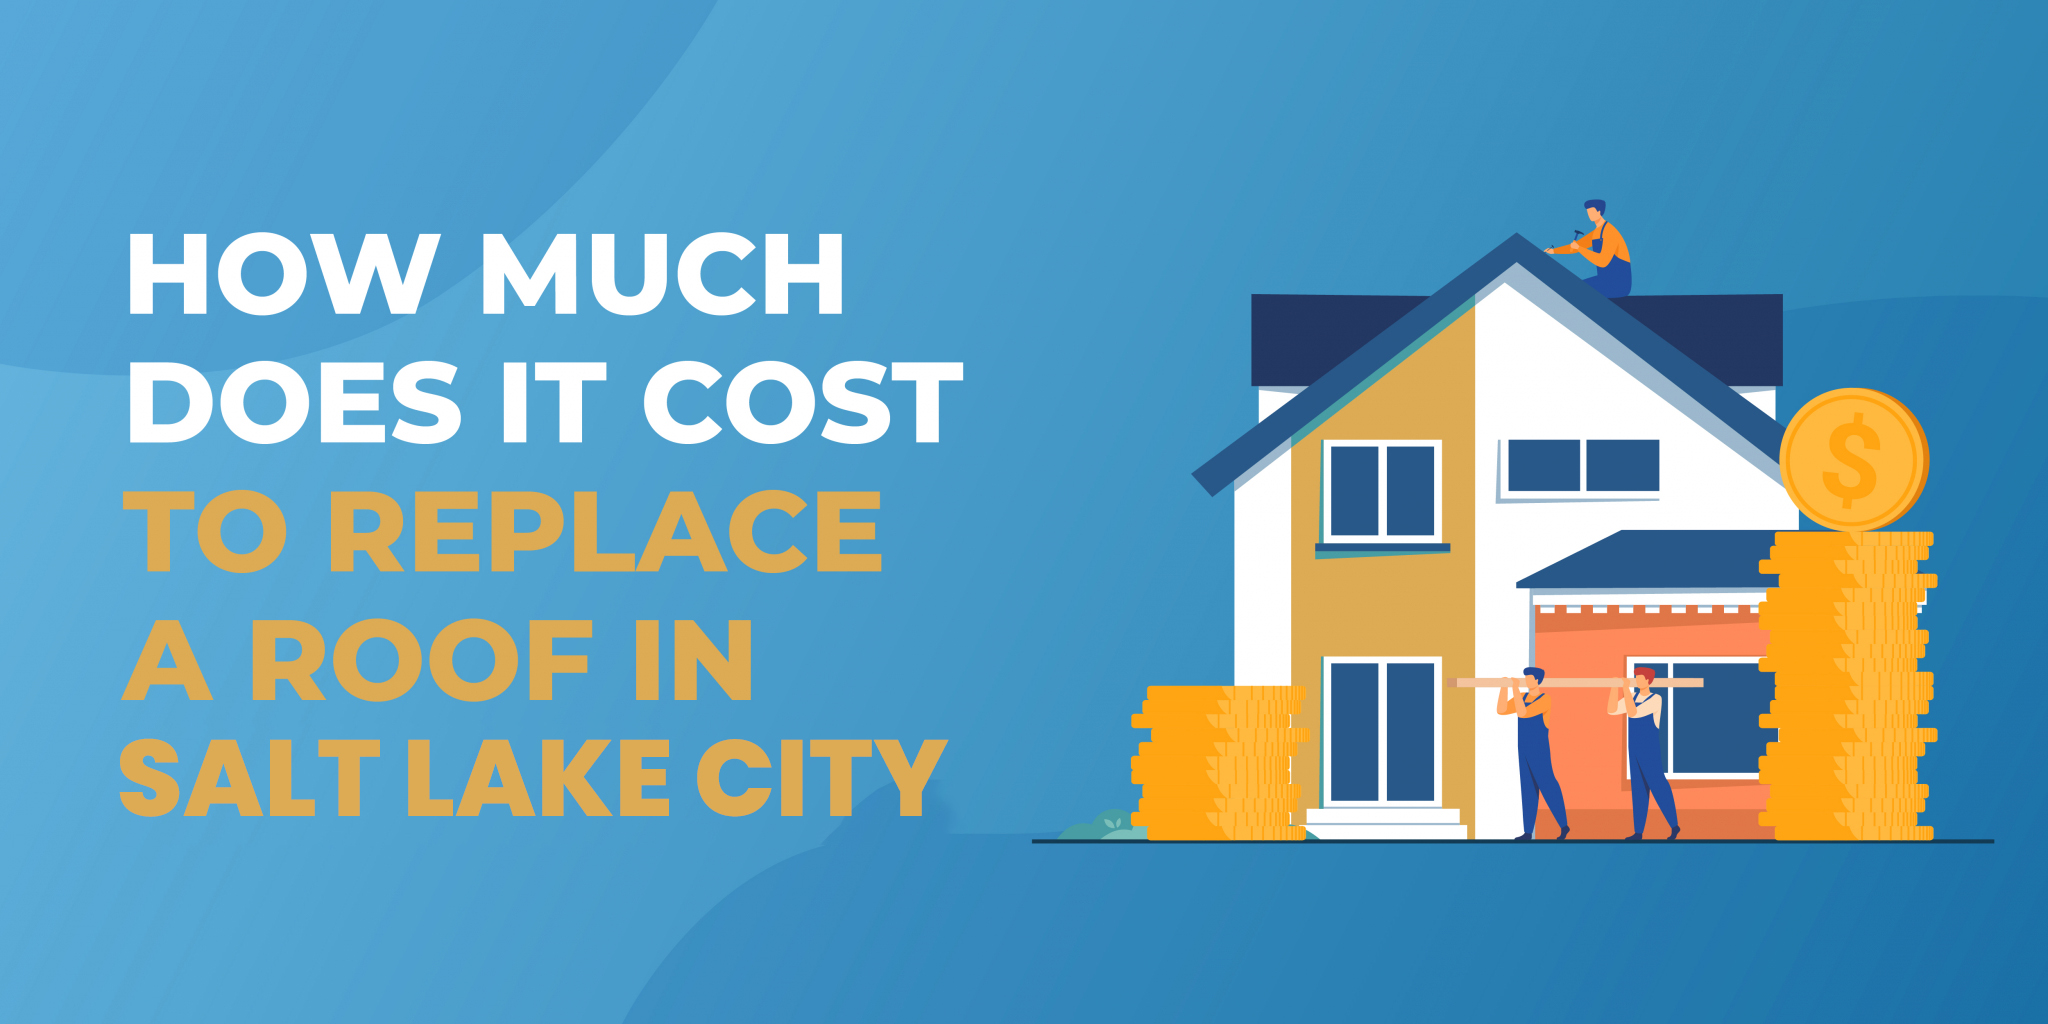 How Much Does it Cost to Replace a Roof in Salt Lake City??